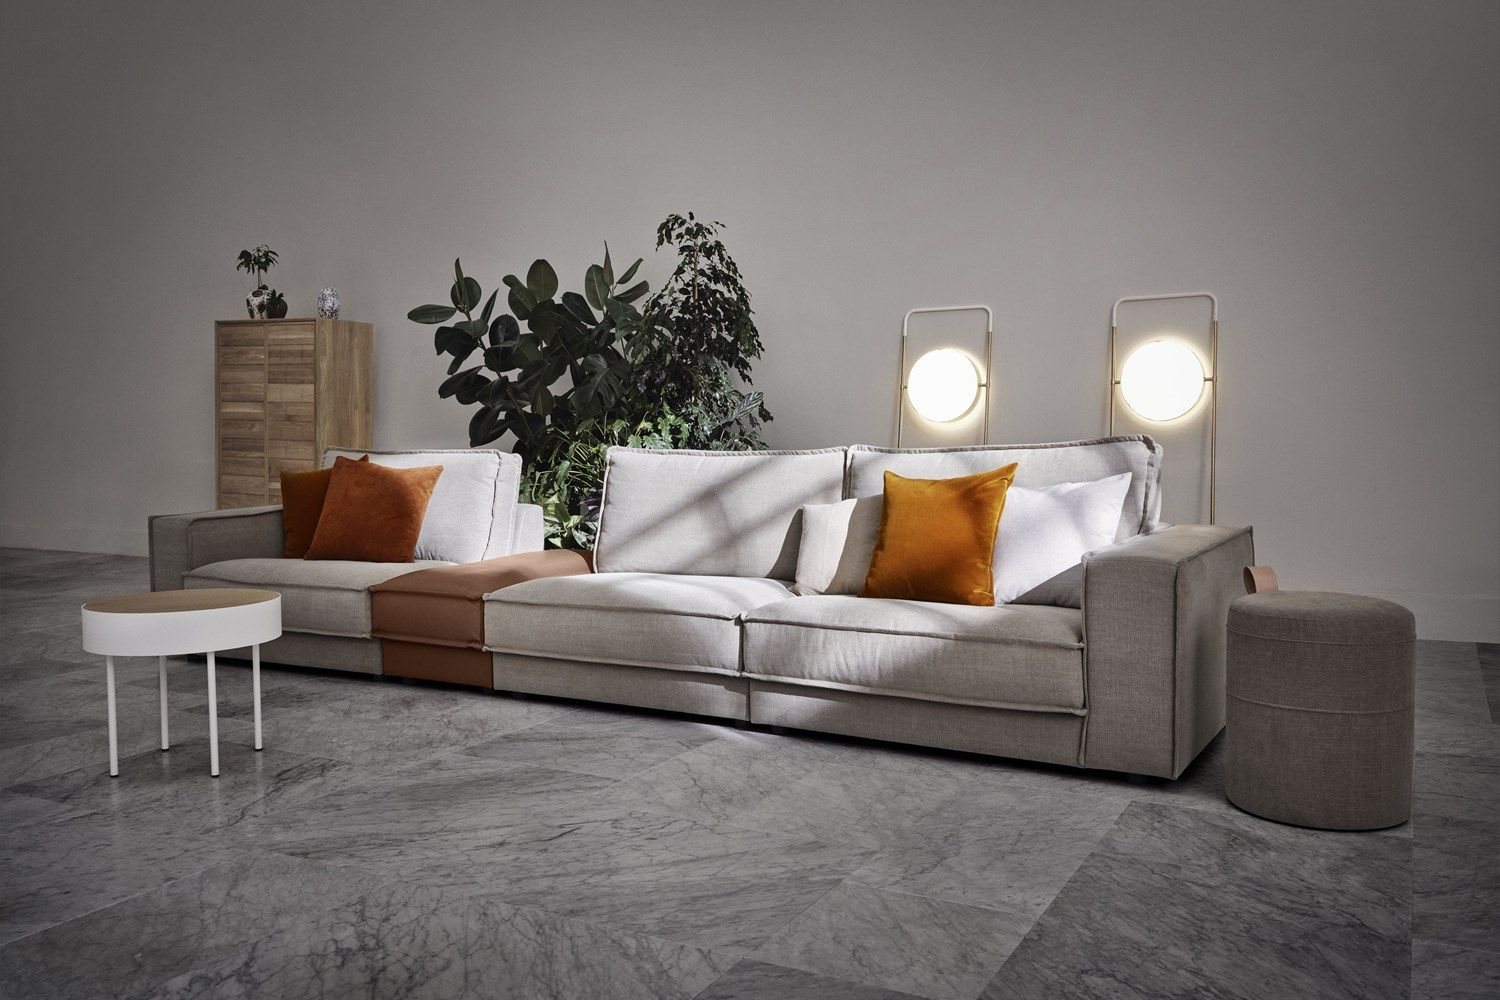 Big Sofa 290 Cm Noora 5 Units 245 X 375 Cm Treadwell In 2019 Led Floor Lamp